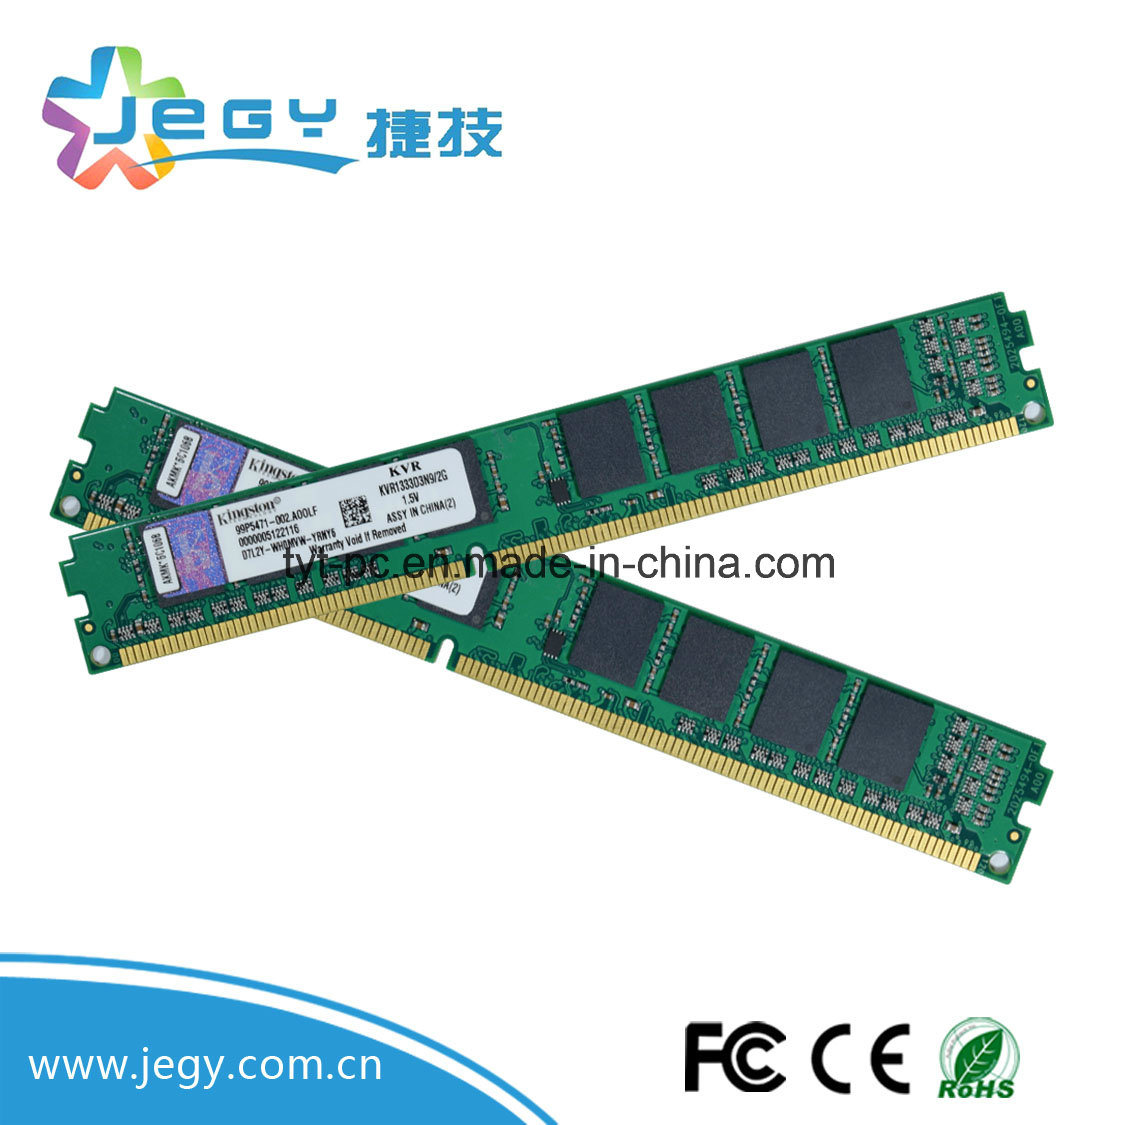 China 2017 Good Quality Wholesale Compatible Memory 2gb 4gb 8gb Ddr2 Ram Pc Smart Ddr3 Supported Motherboard For Desktop Computer